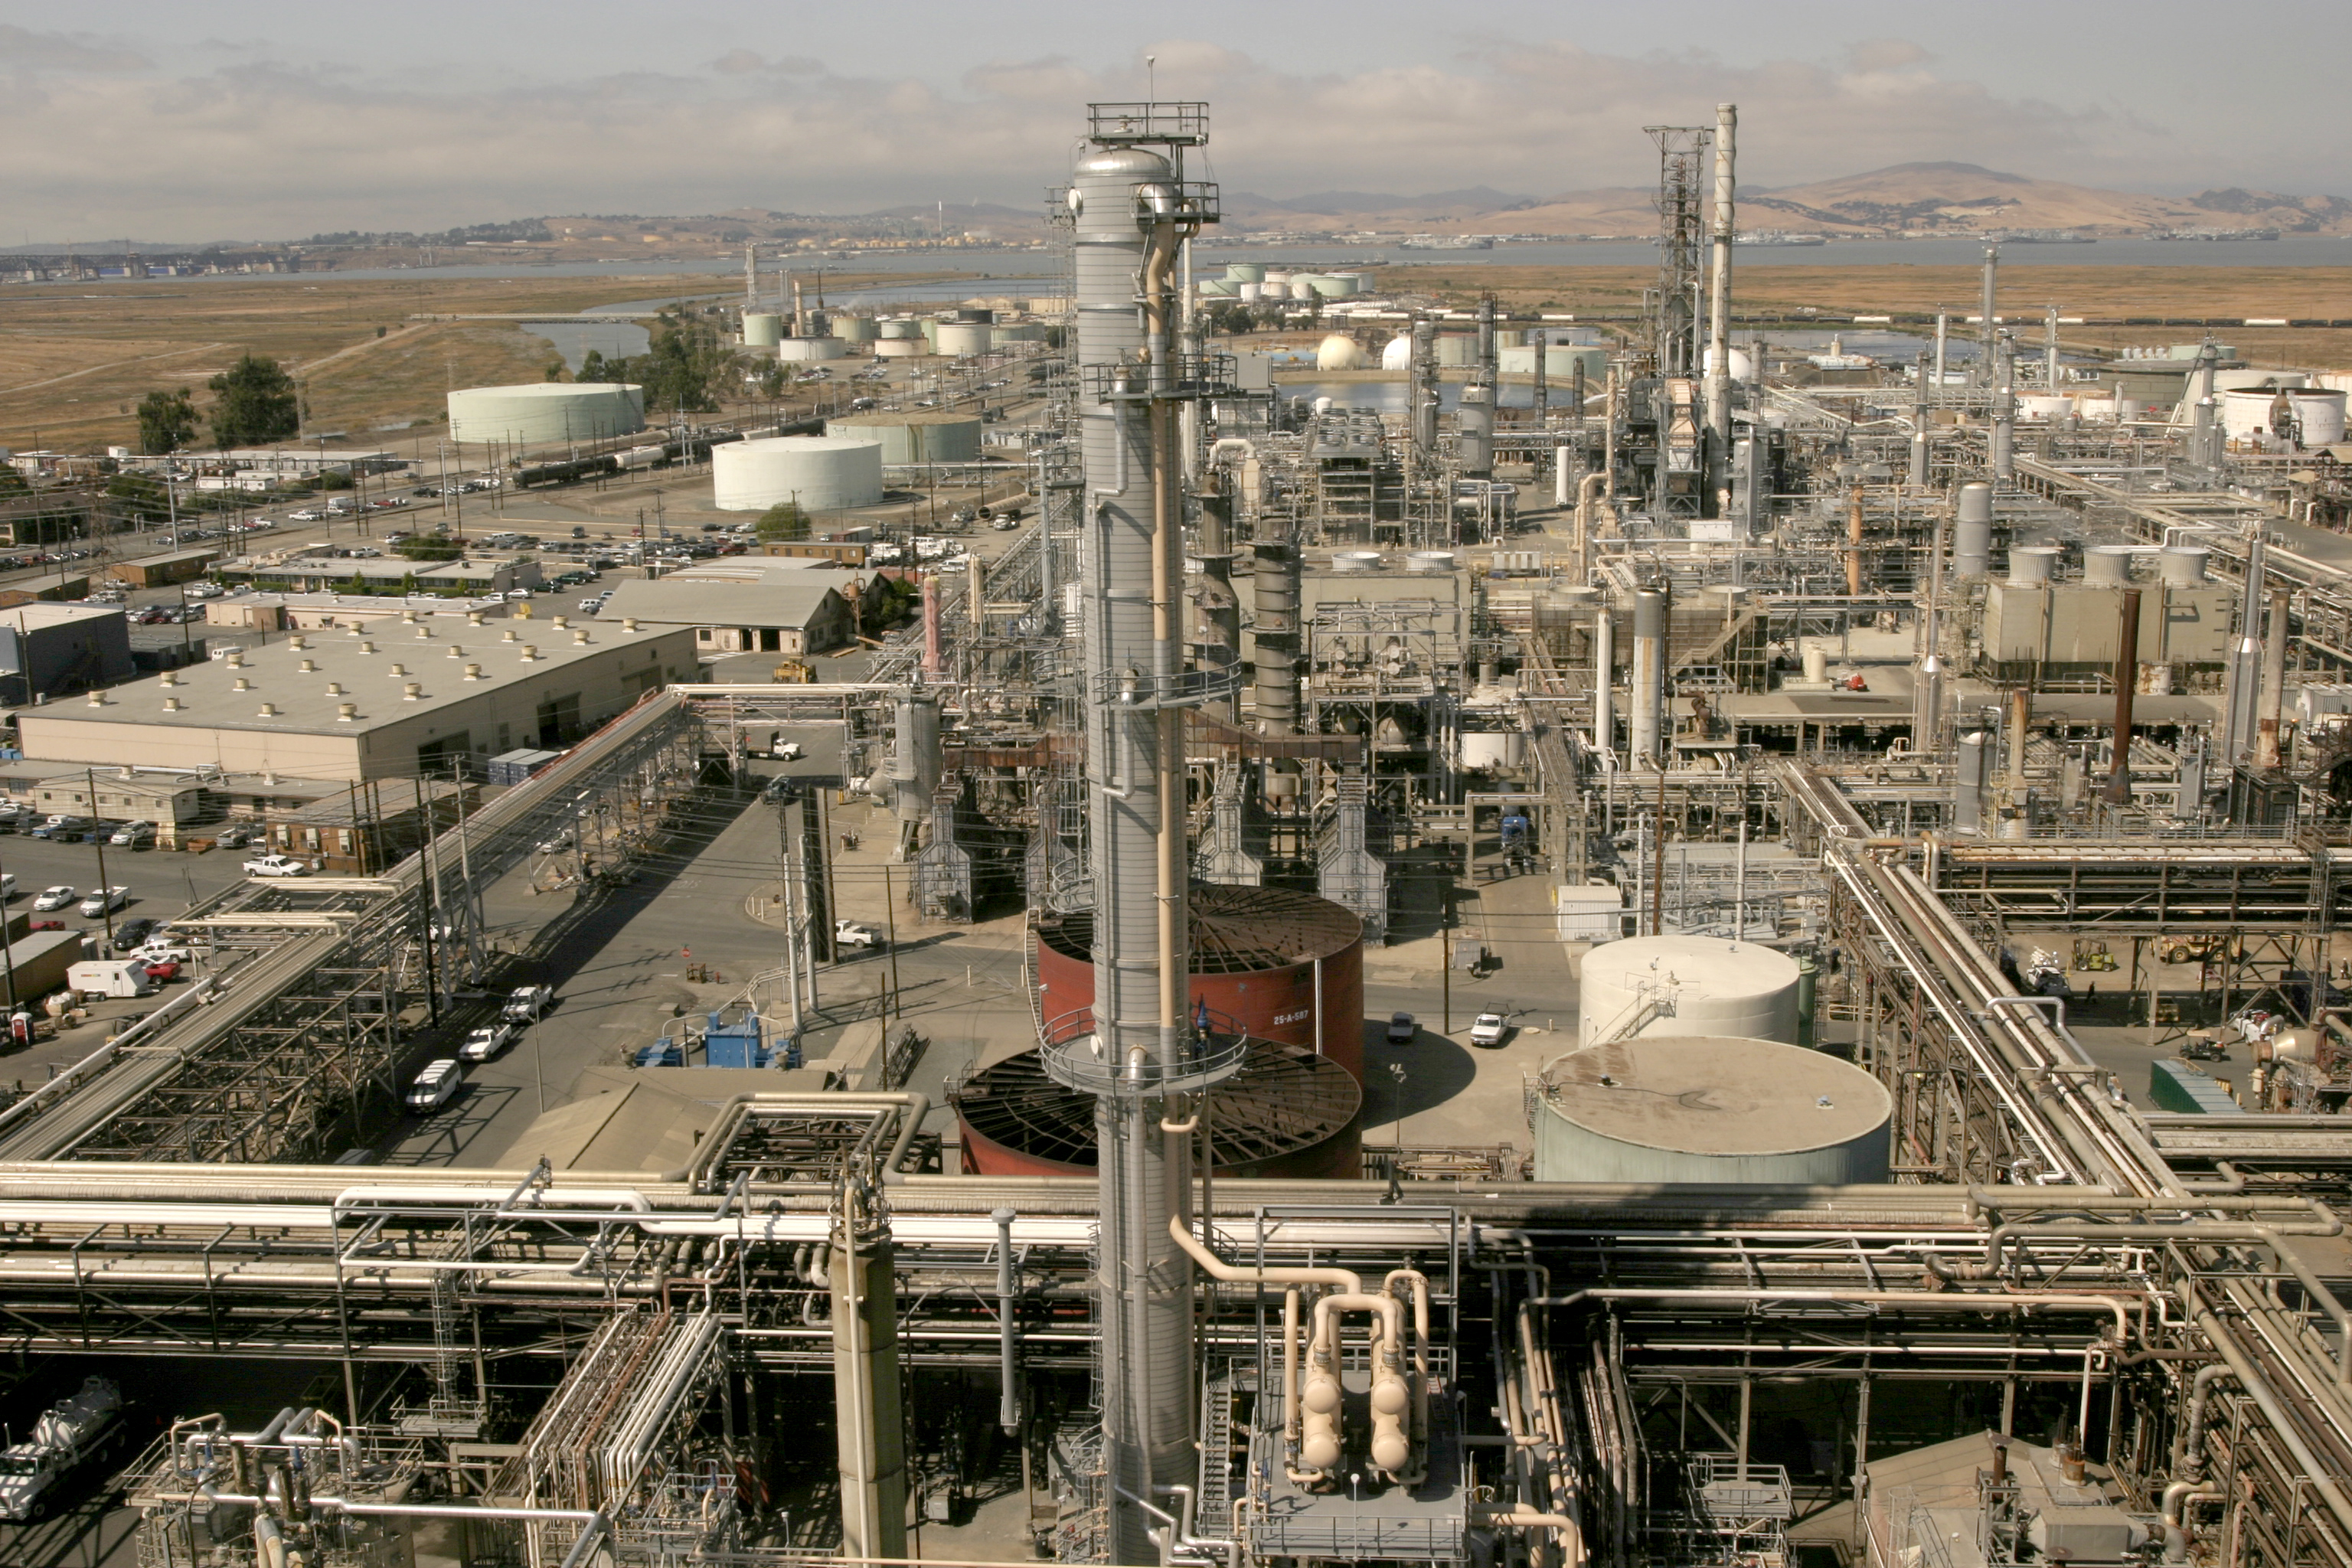 Martinez Refinery